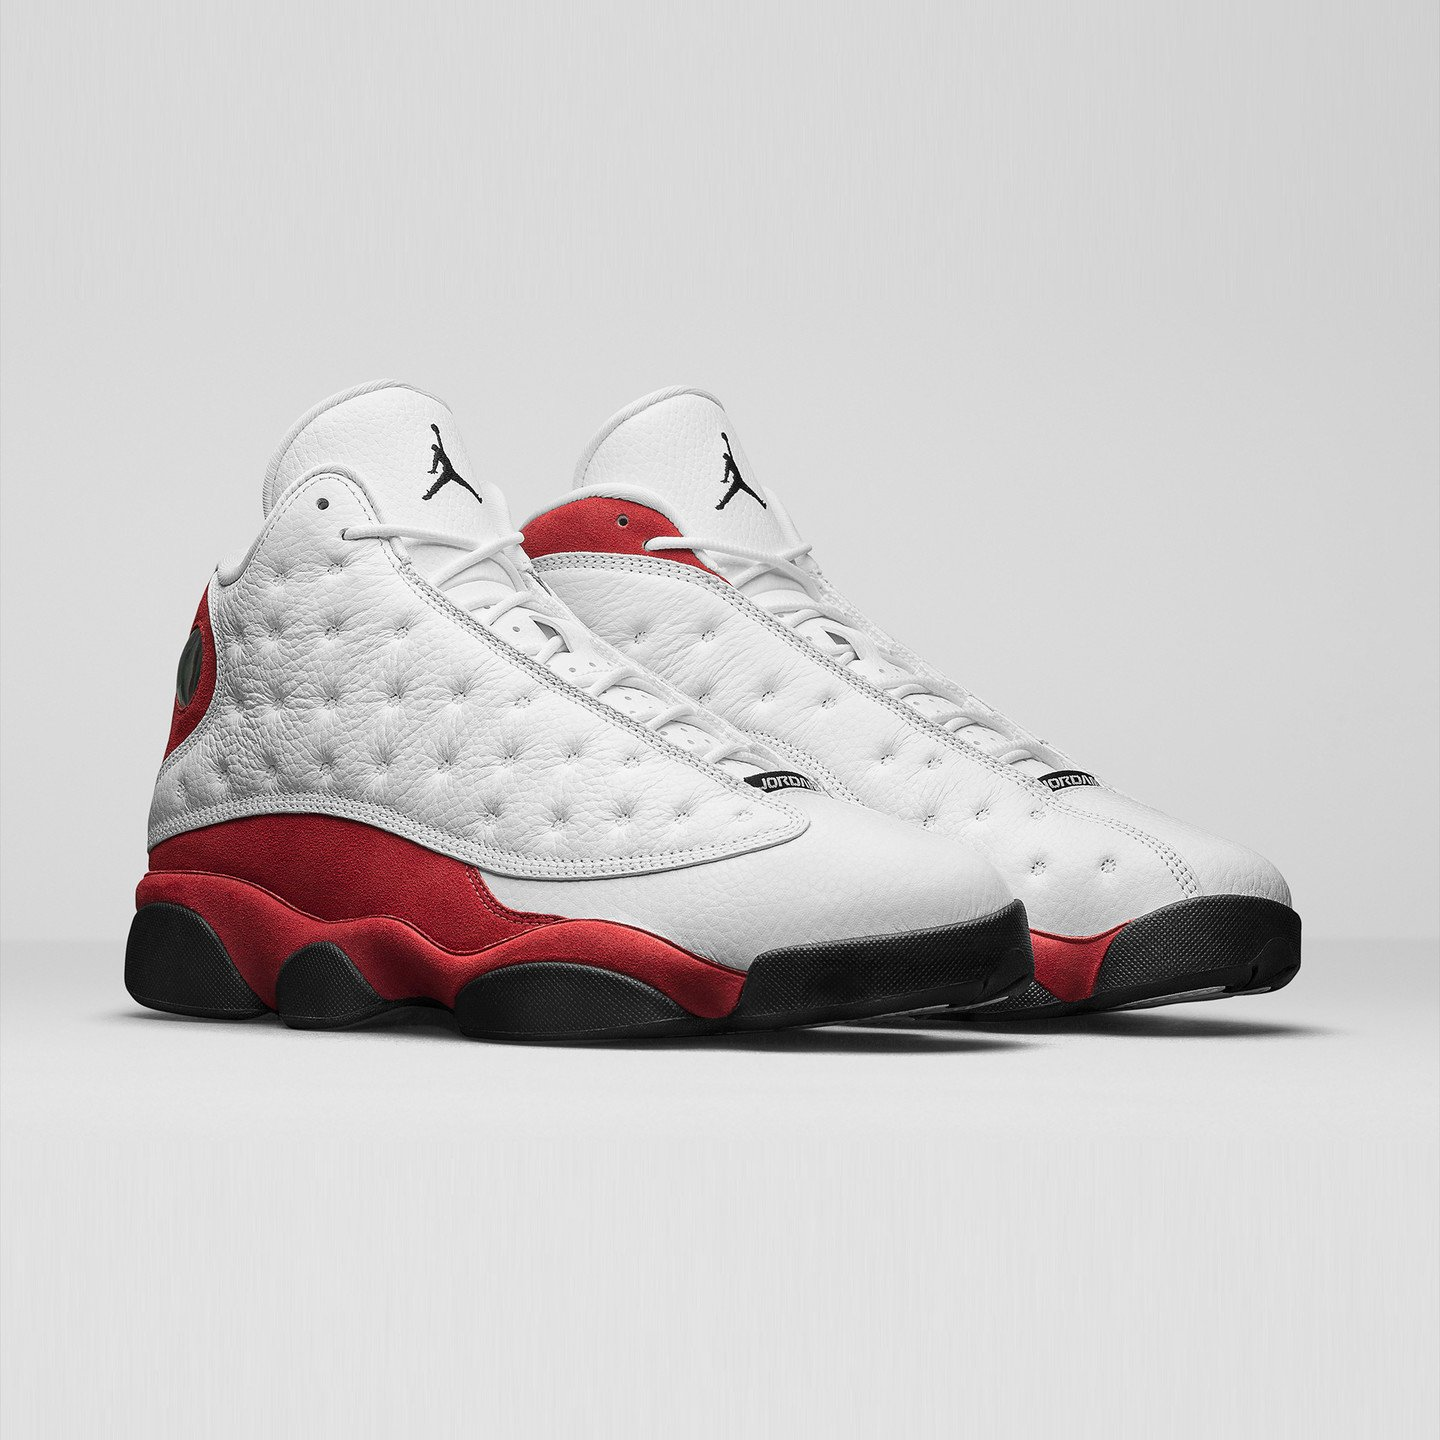 Jordan Air Jordan 13 Retro OG White / Black / Team Red 414571-122-45